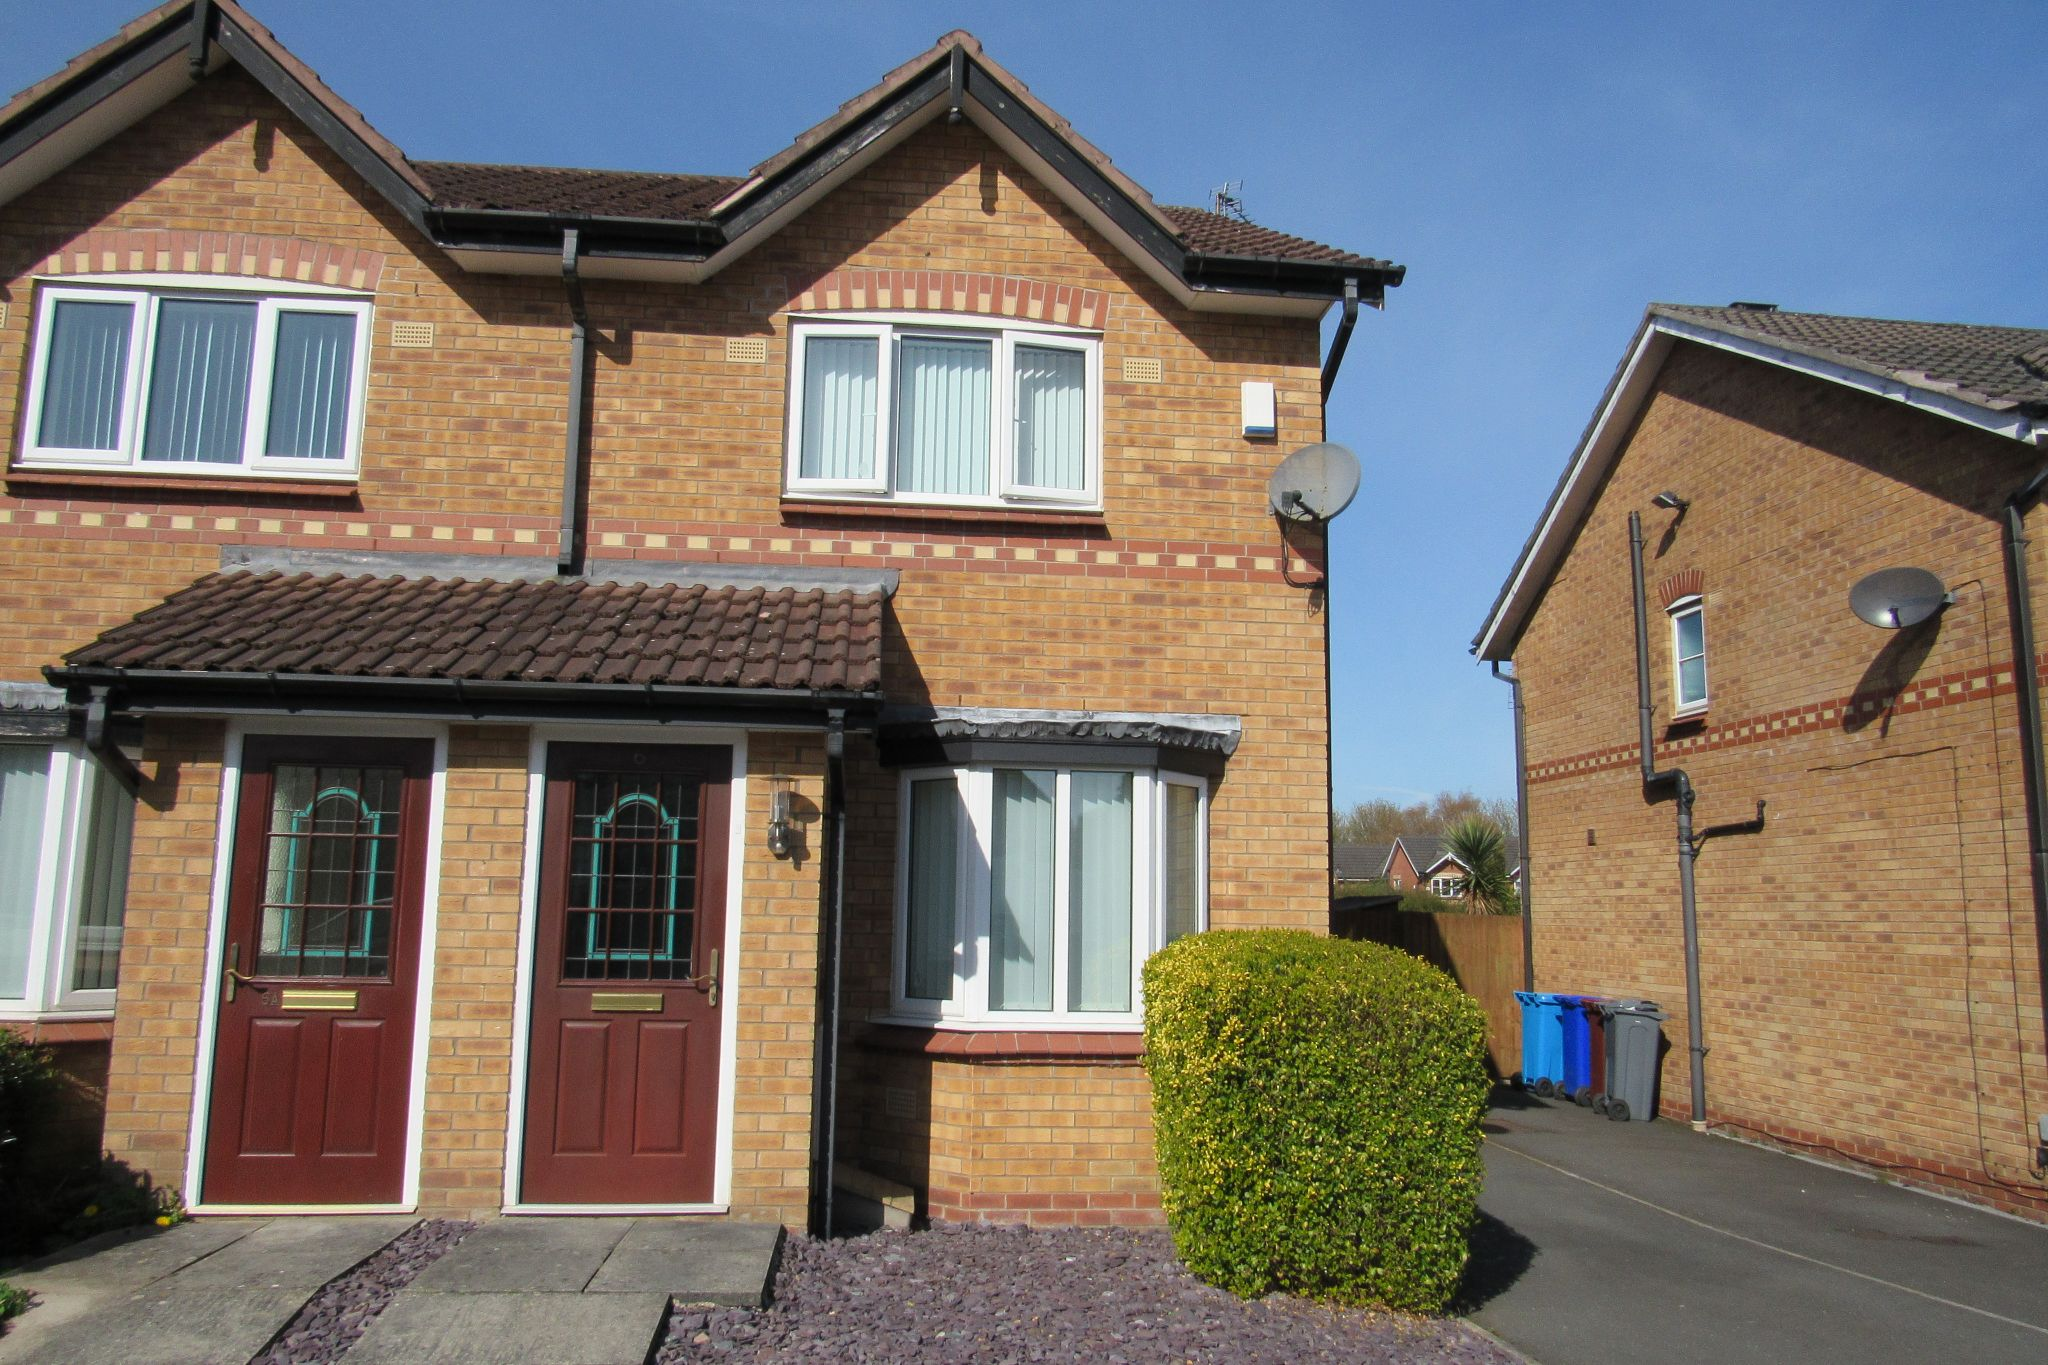 2 bedroom semi-detached house Sale Agreed in Manchester - Photograph 1.